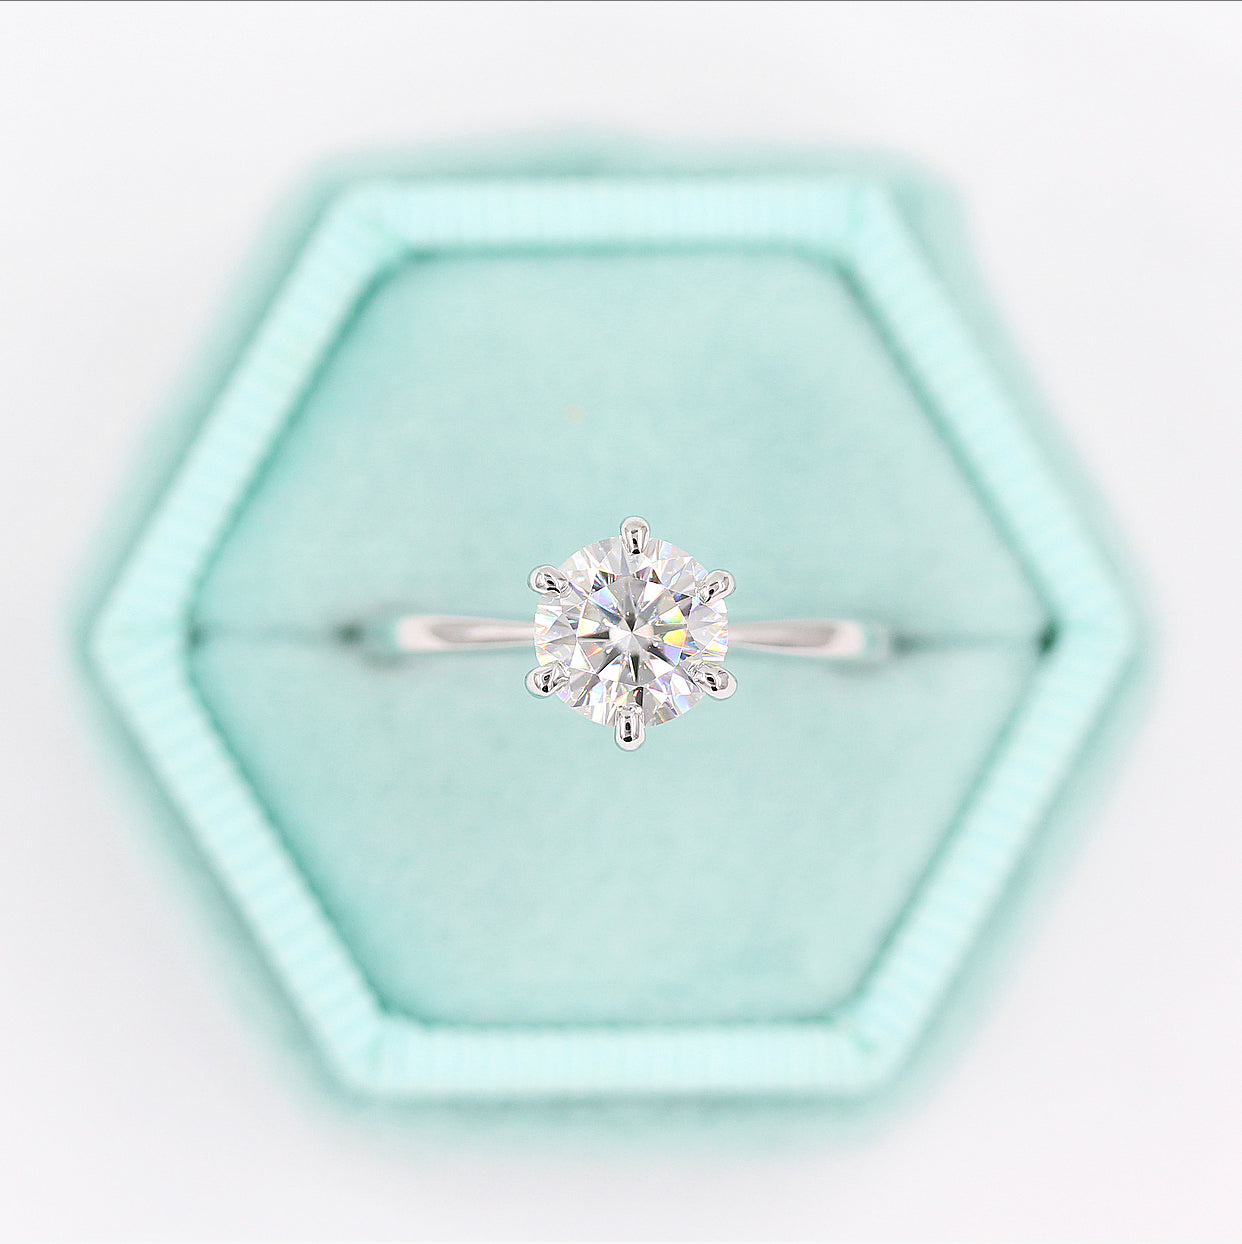 The Audrey Ring